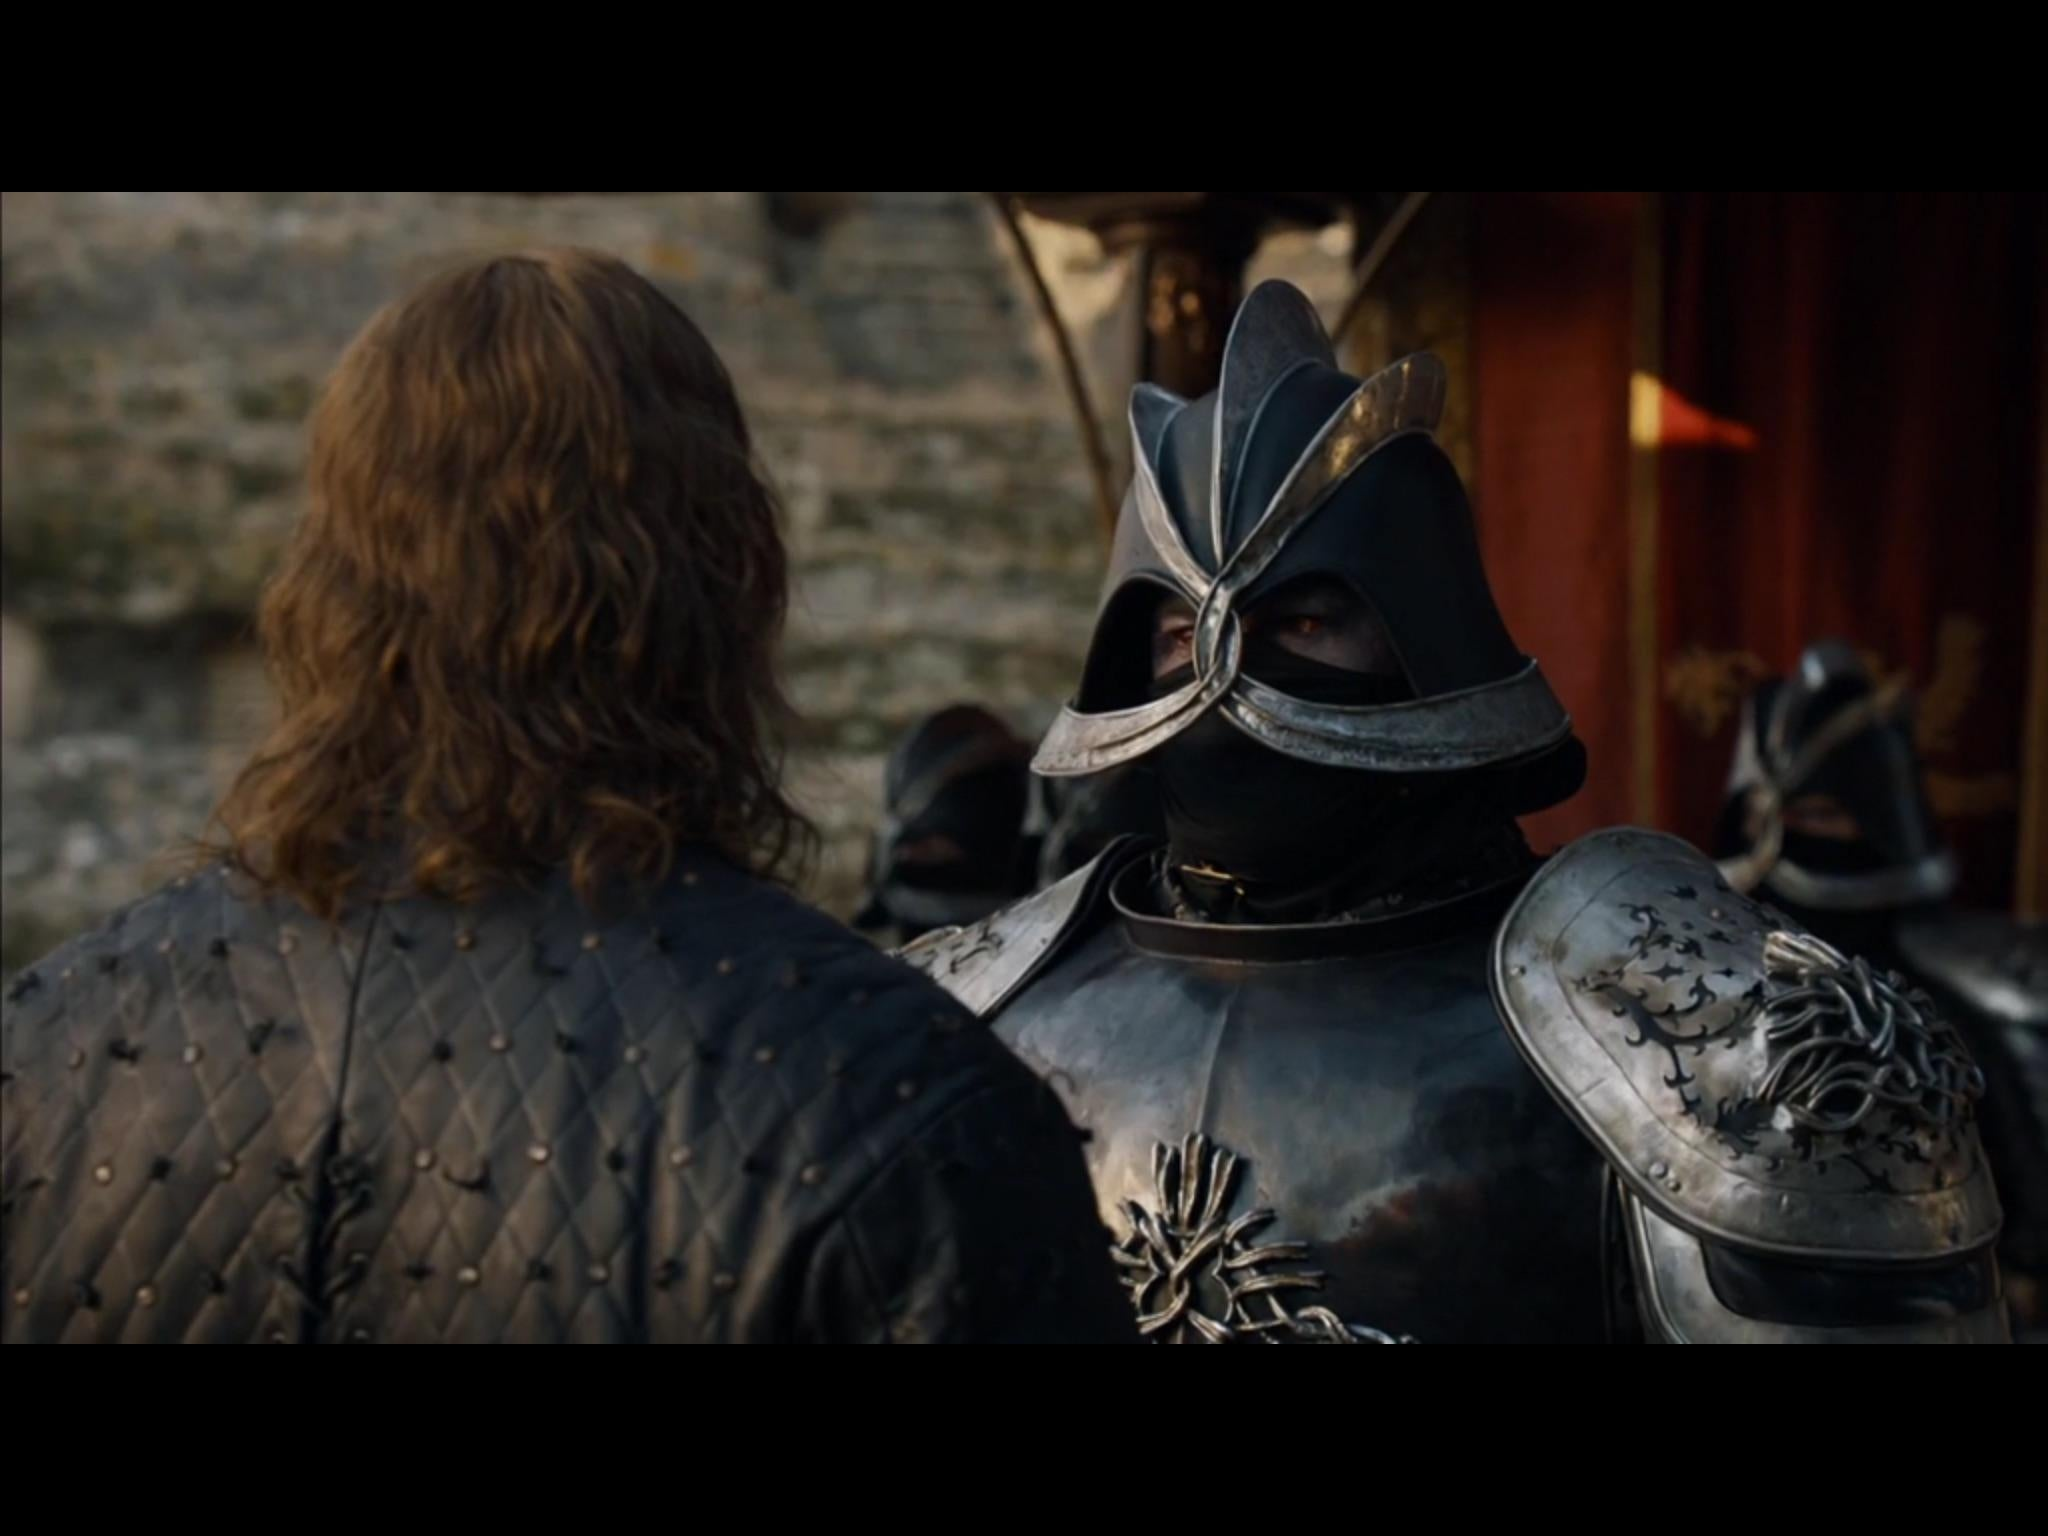 Game Of Thrones Season 7 Episode 7 Confirms The Hound And The